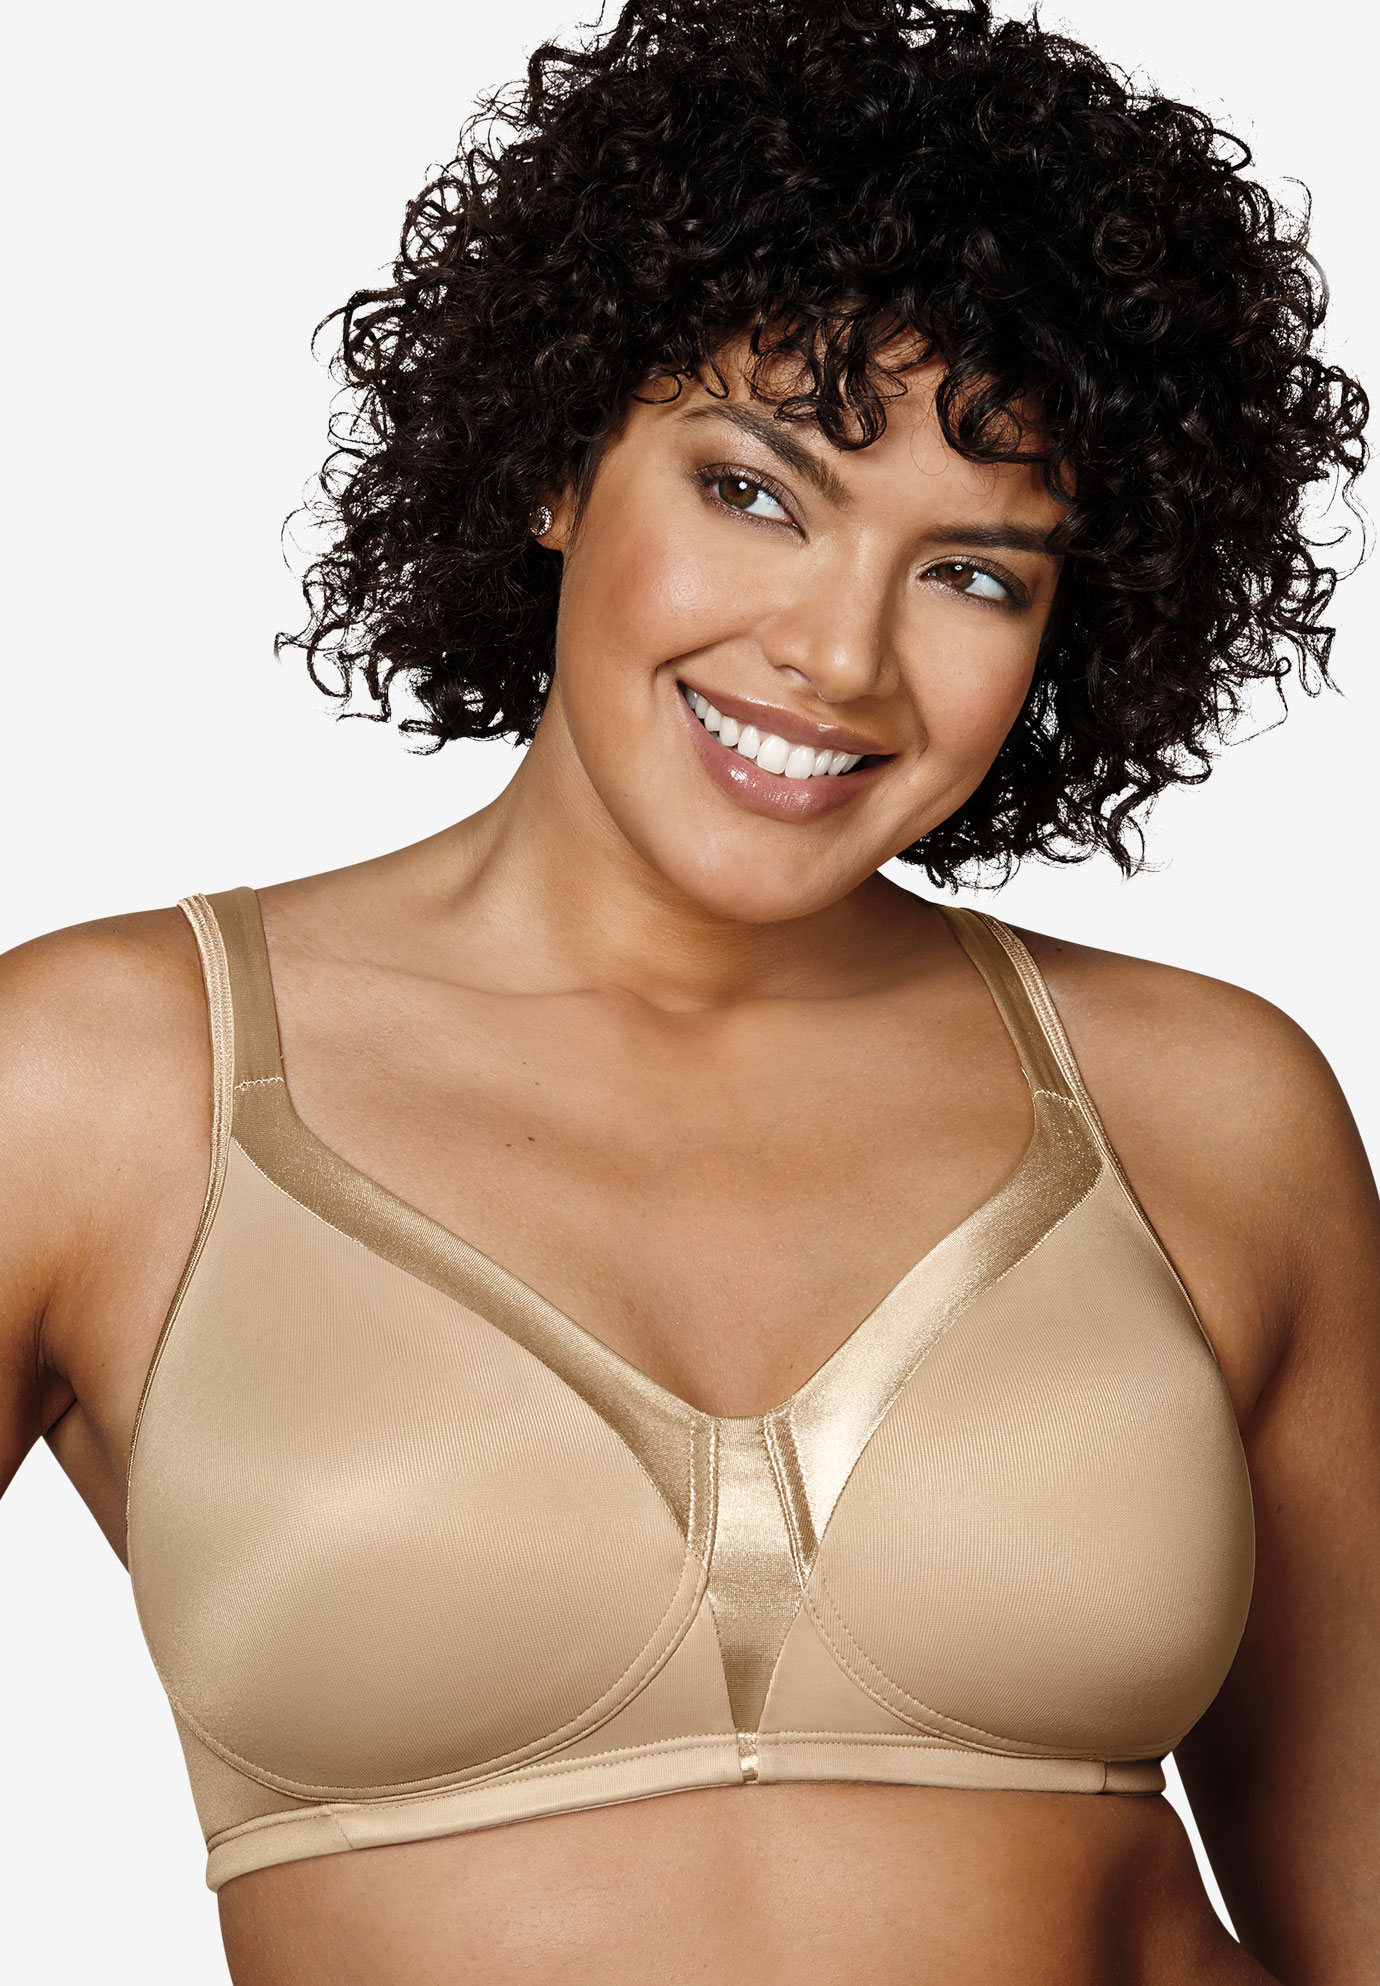 18 Hour® Silky Soft Smoothing Wireless Bra 4803B,